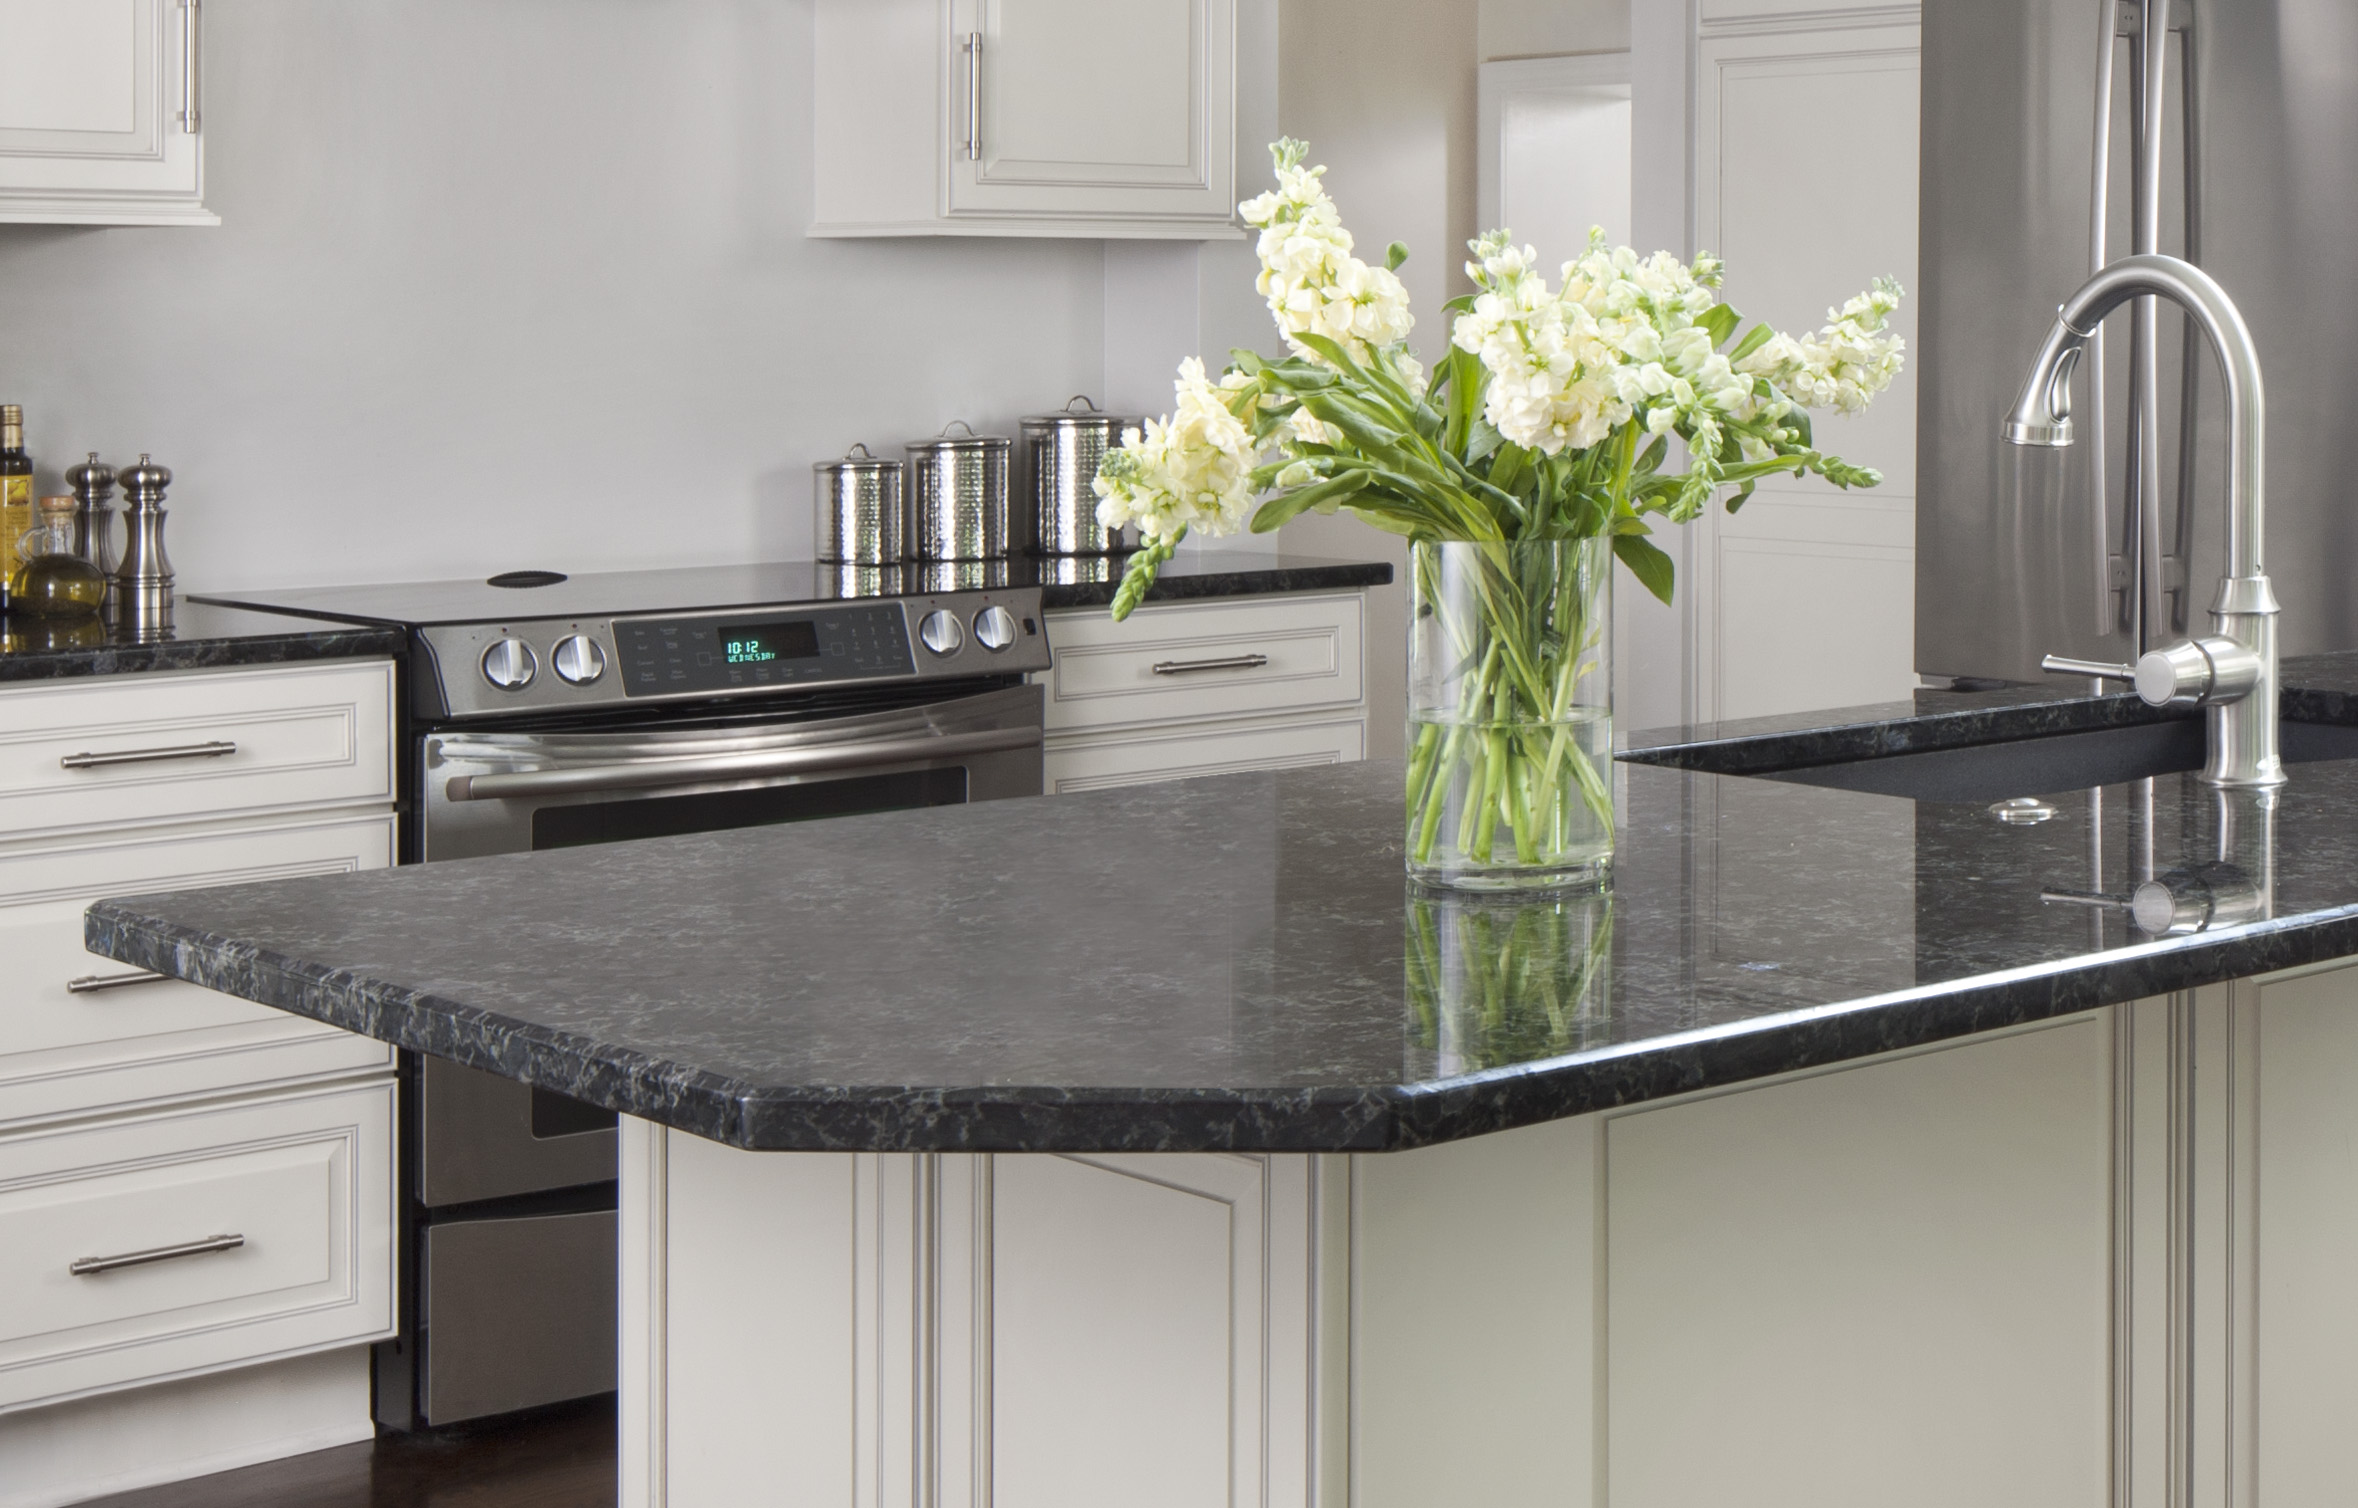 new countertop materials granite quartz is nonporous so it never needs to be sealed other countertop materials in comparison may require new protective top coat periodically countertop comparison which material should choose